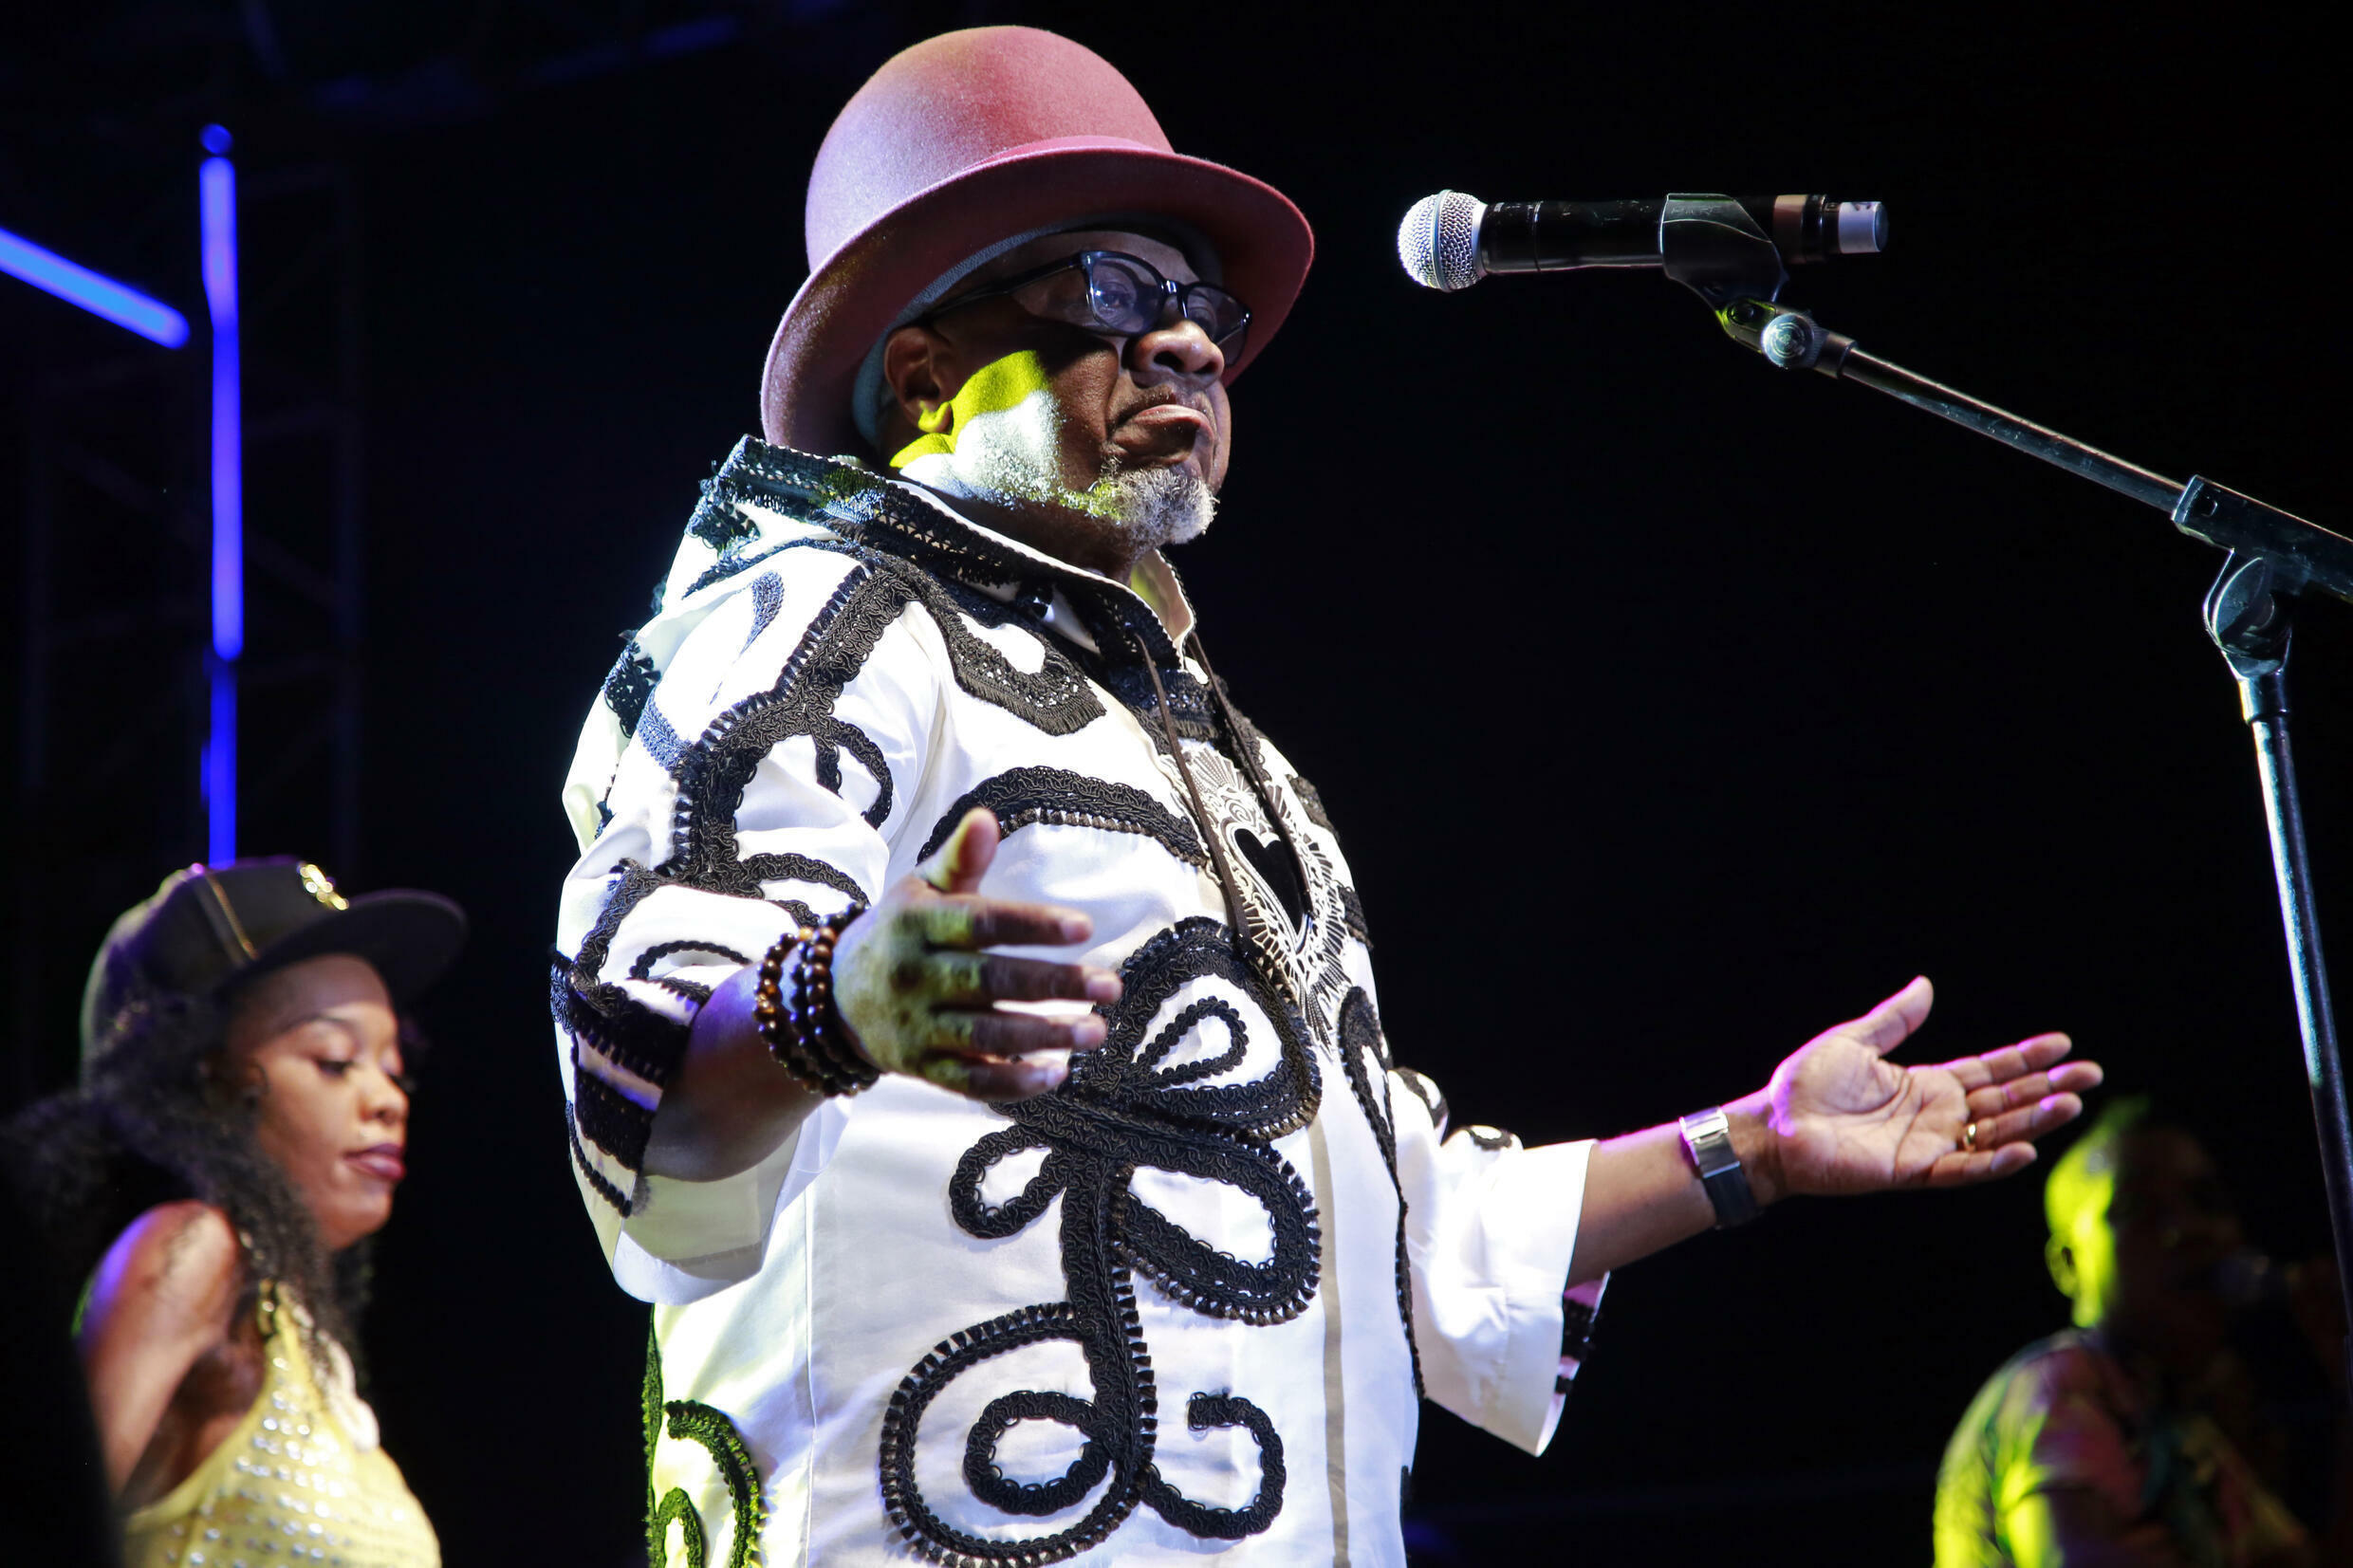 King of rumba: Congolese music icon Papa Wemba helped bring rumba to a world audience